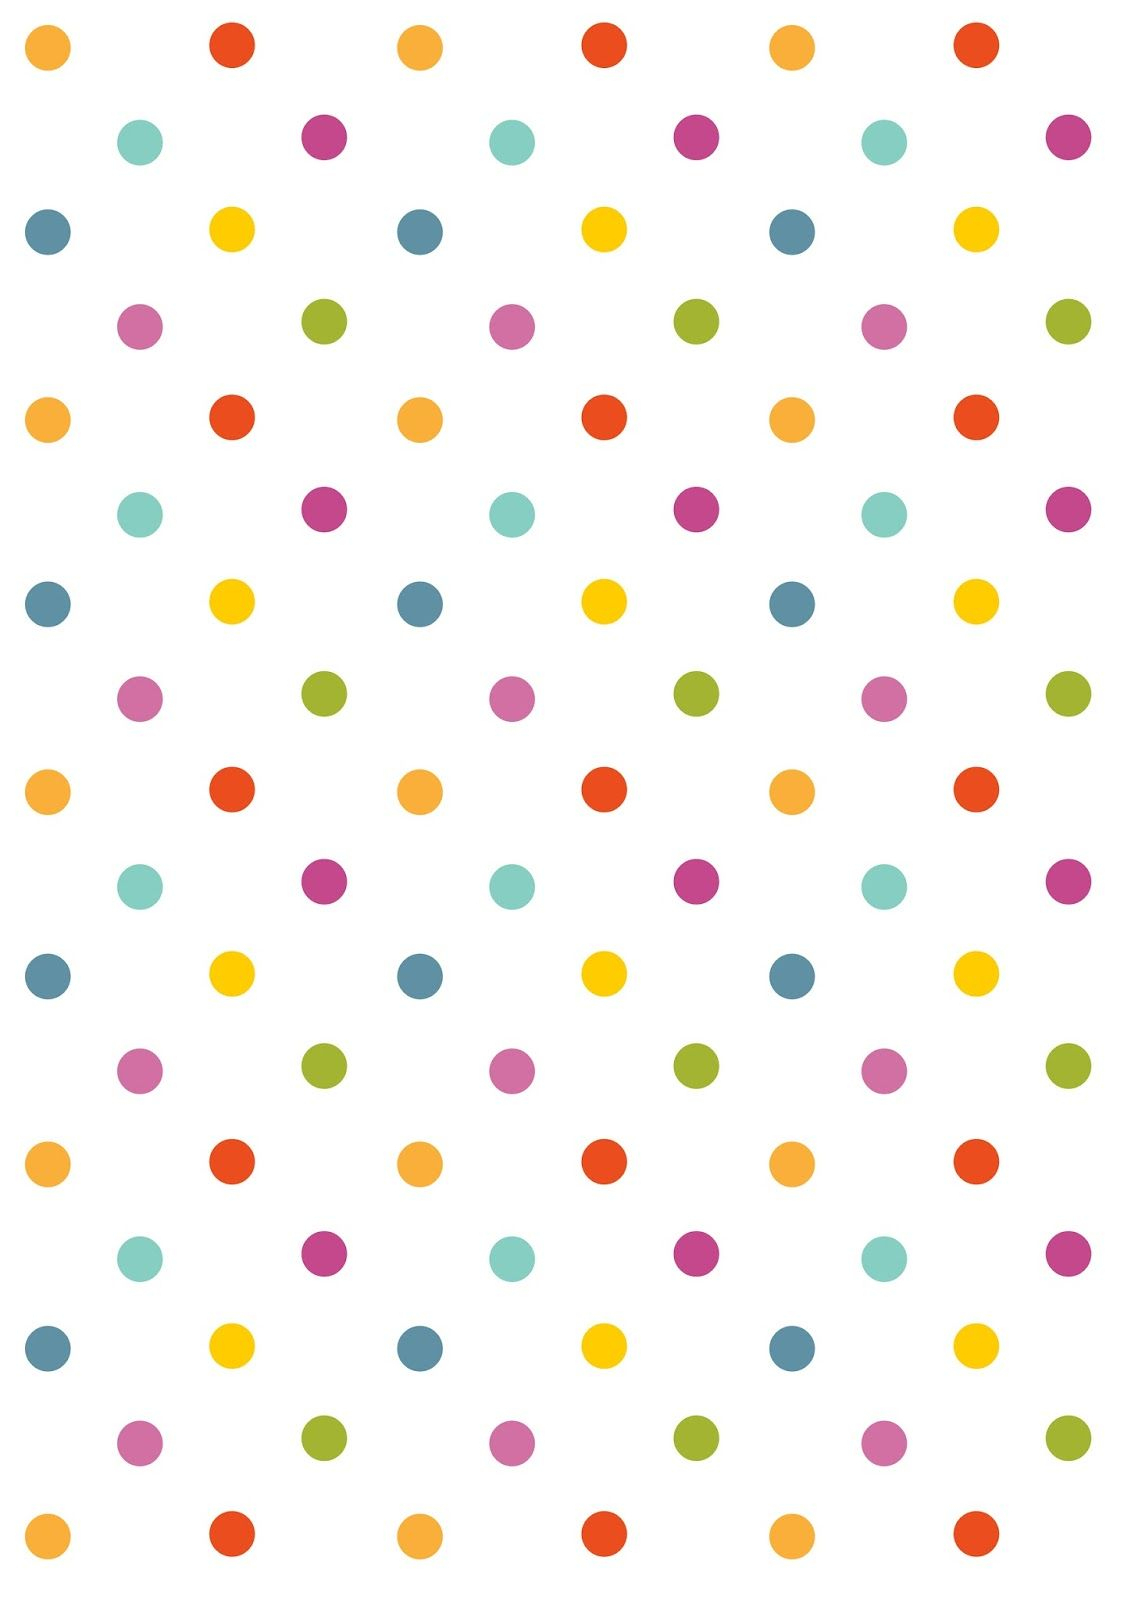 Free Digital Polka Dot Scrapbooking Paper - Ausdruckbares - Free Printable Wallpaper Patterns